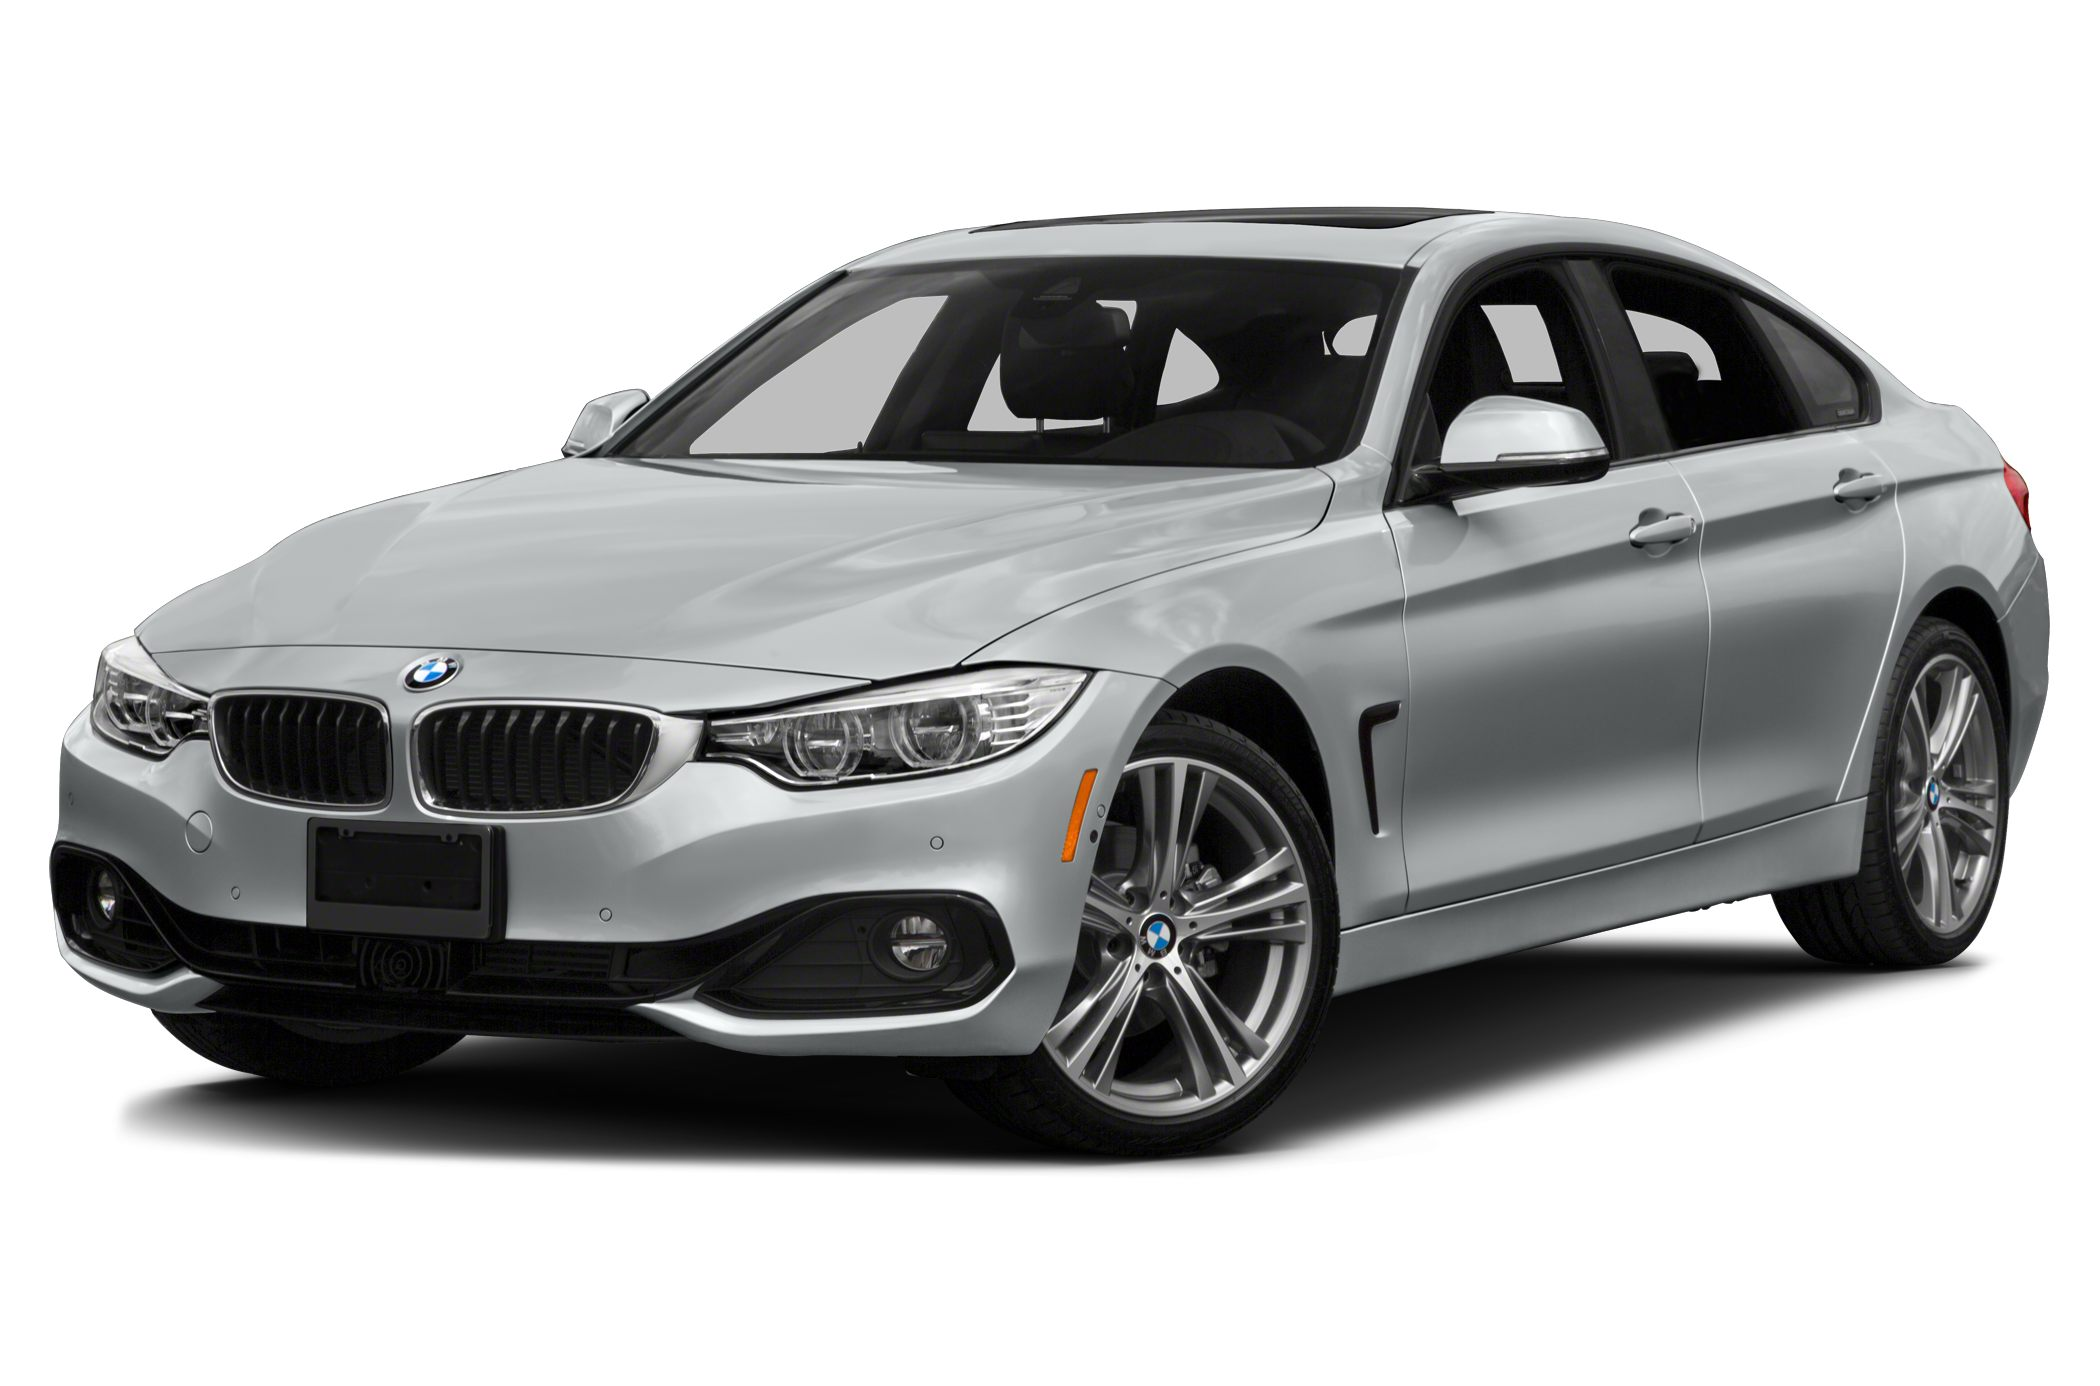 2015 BMW 428 Gran Coupe I XDrive Hatchback for sale in Chicago for $50,050 with 4 miles.